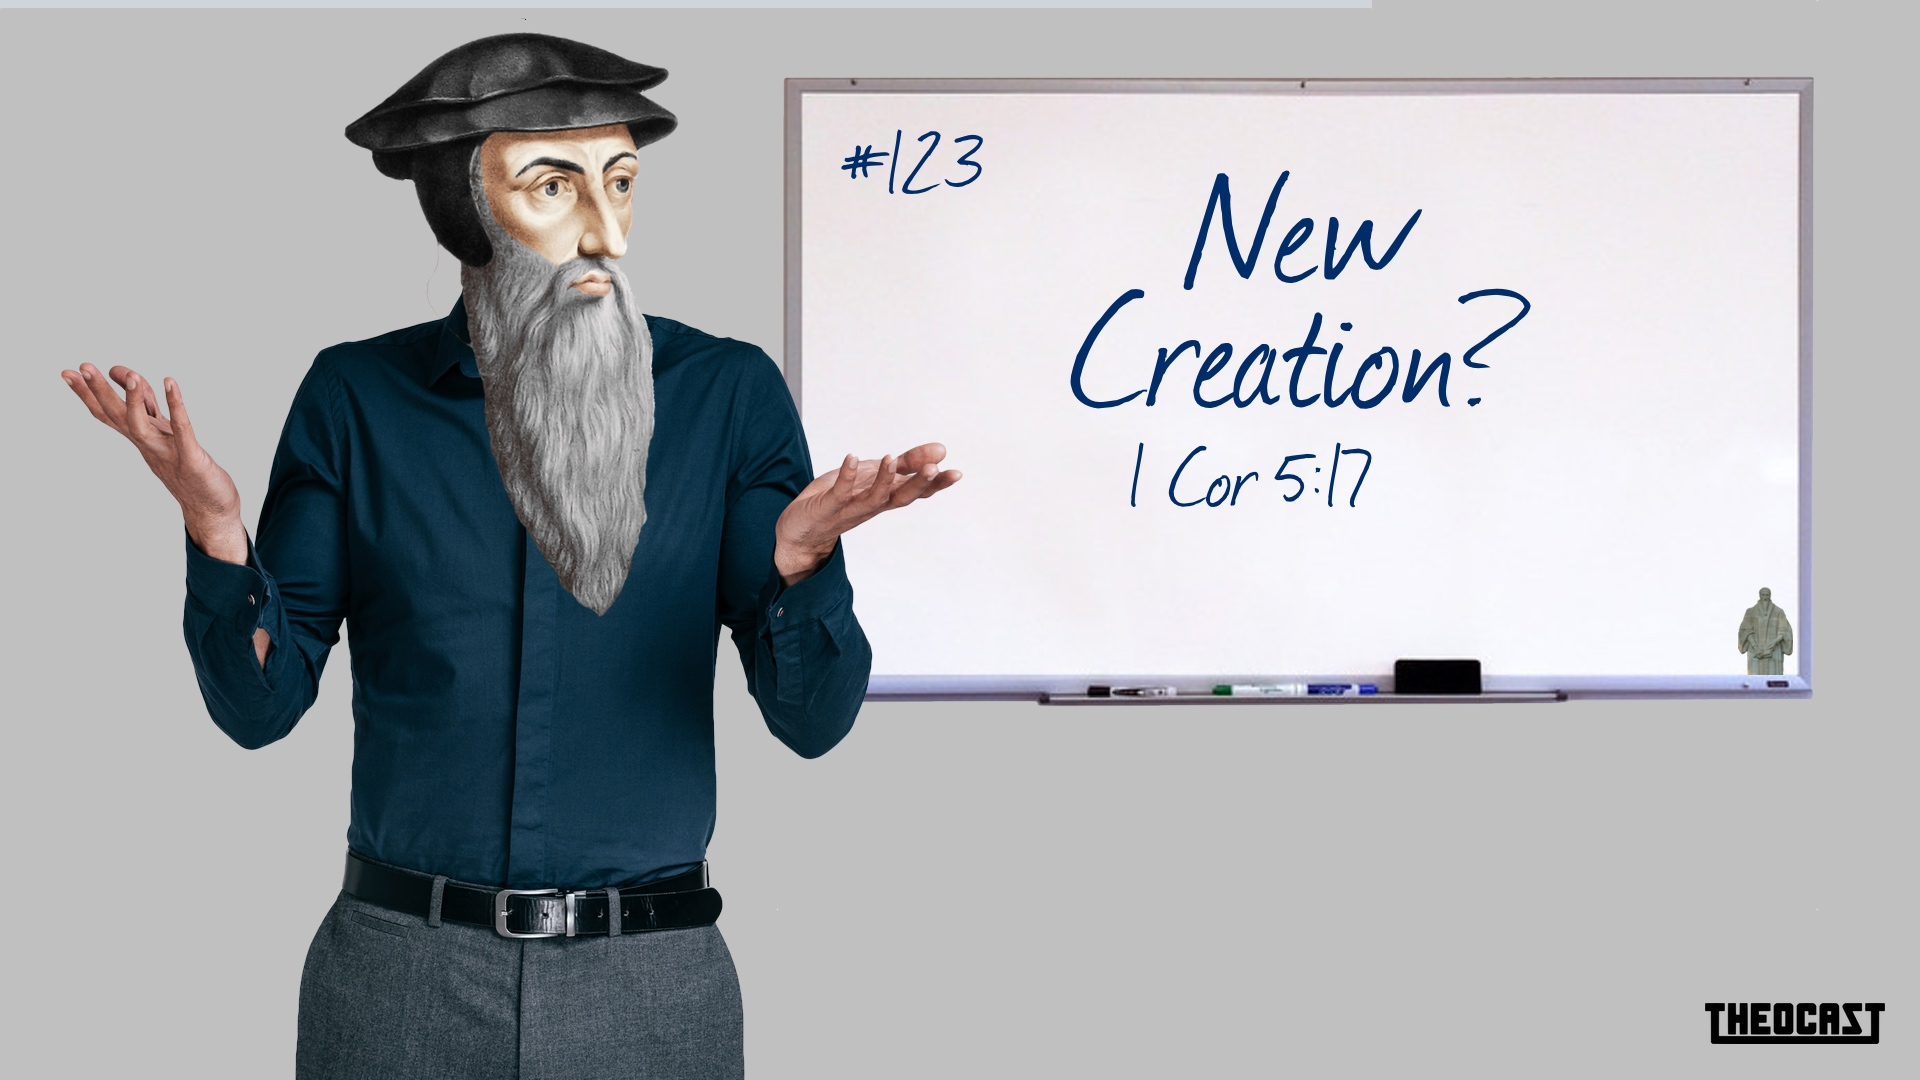 #123 New Creation? 2 Cor 5:17